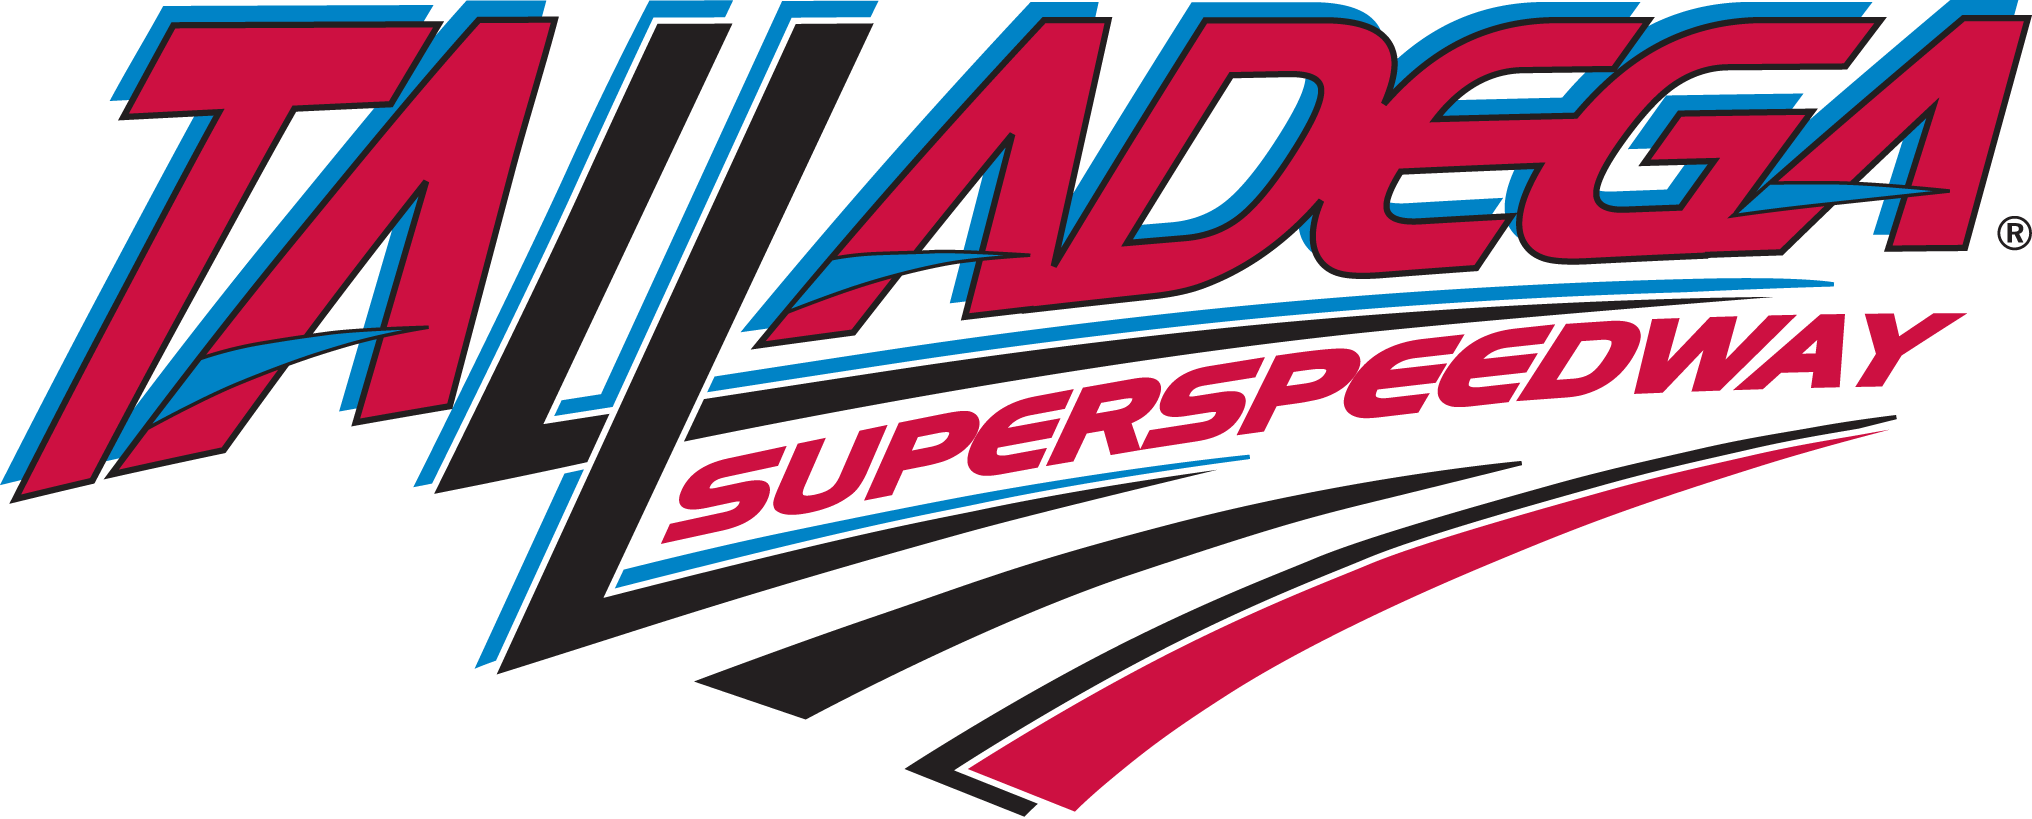 Contact Us - Talladega Superspeedway